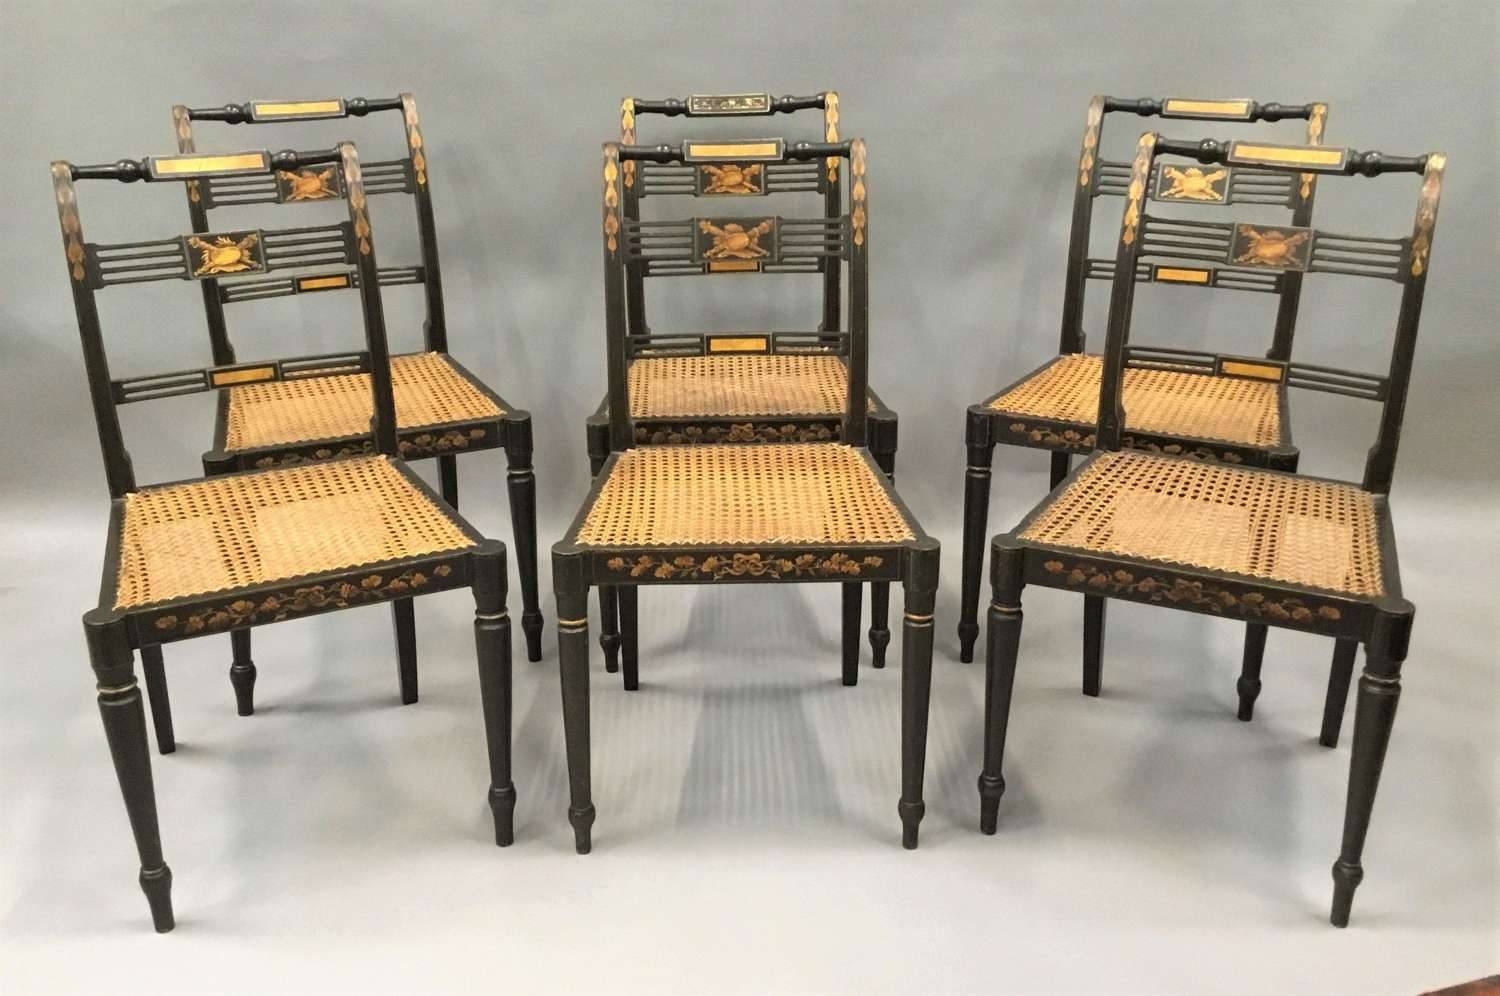 Regency set of 6 painted and parcel gilt chairs